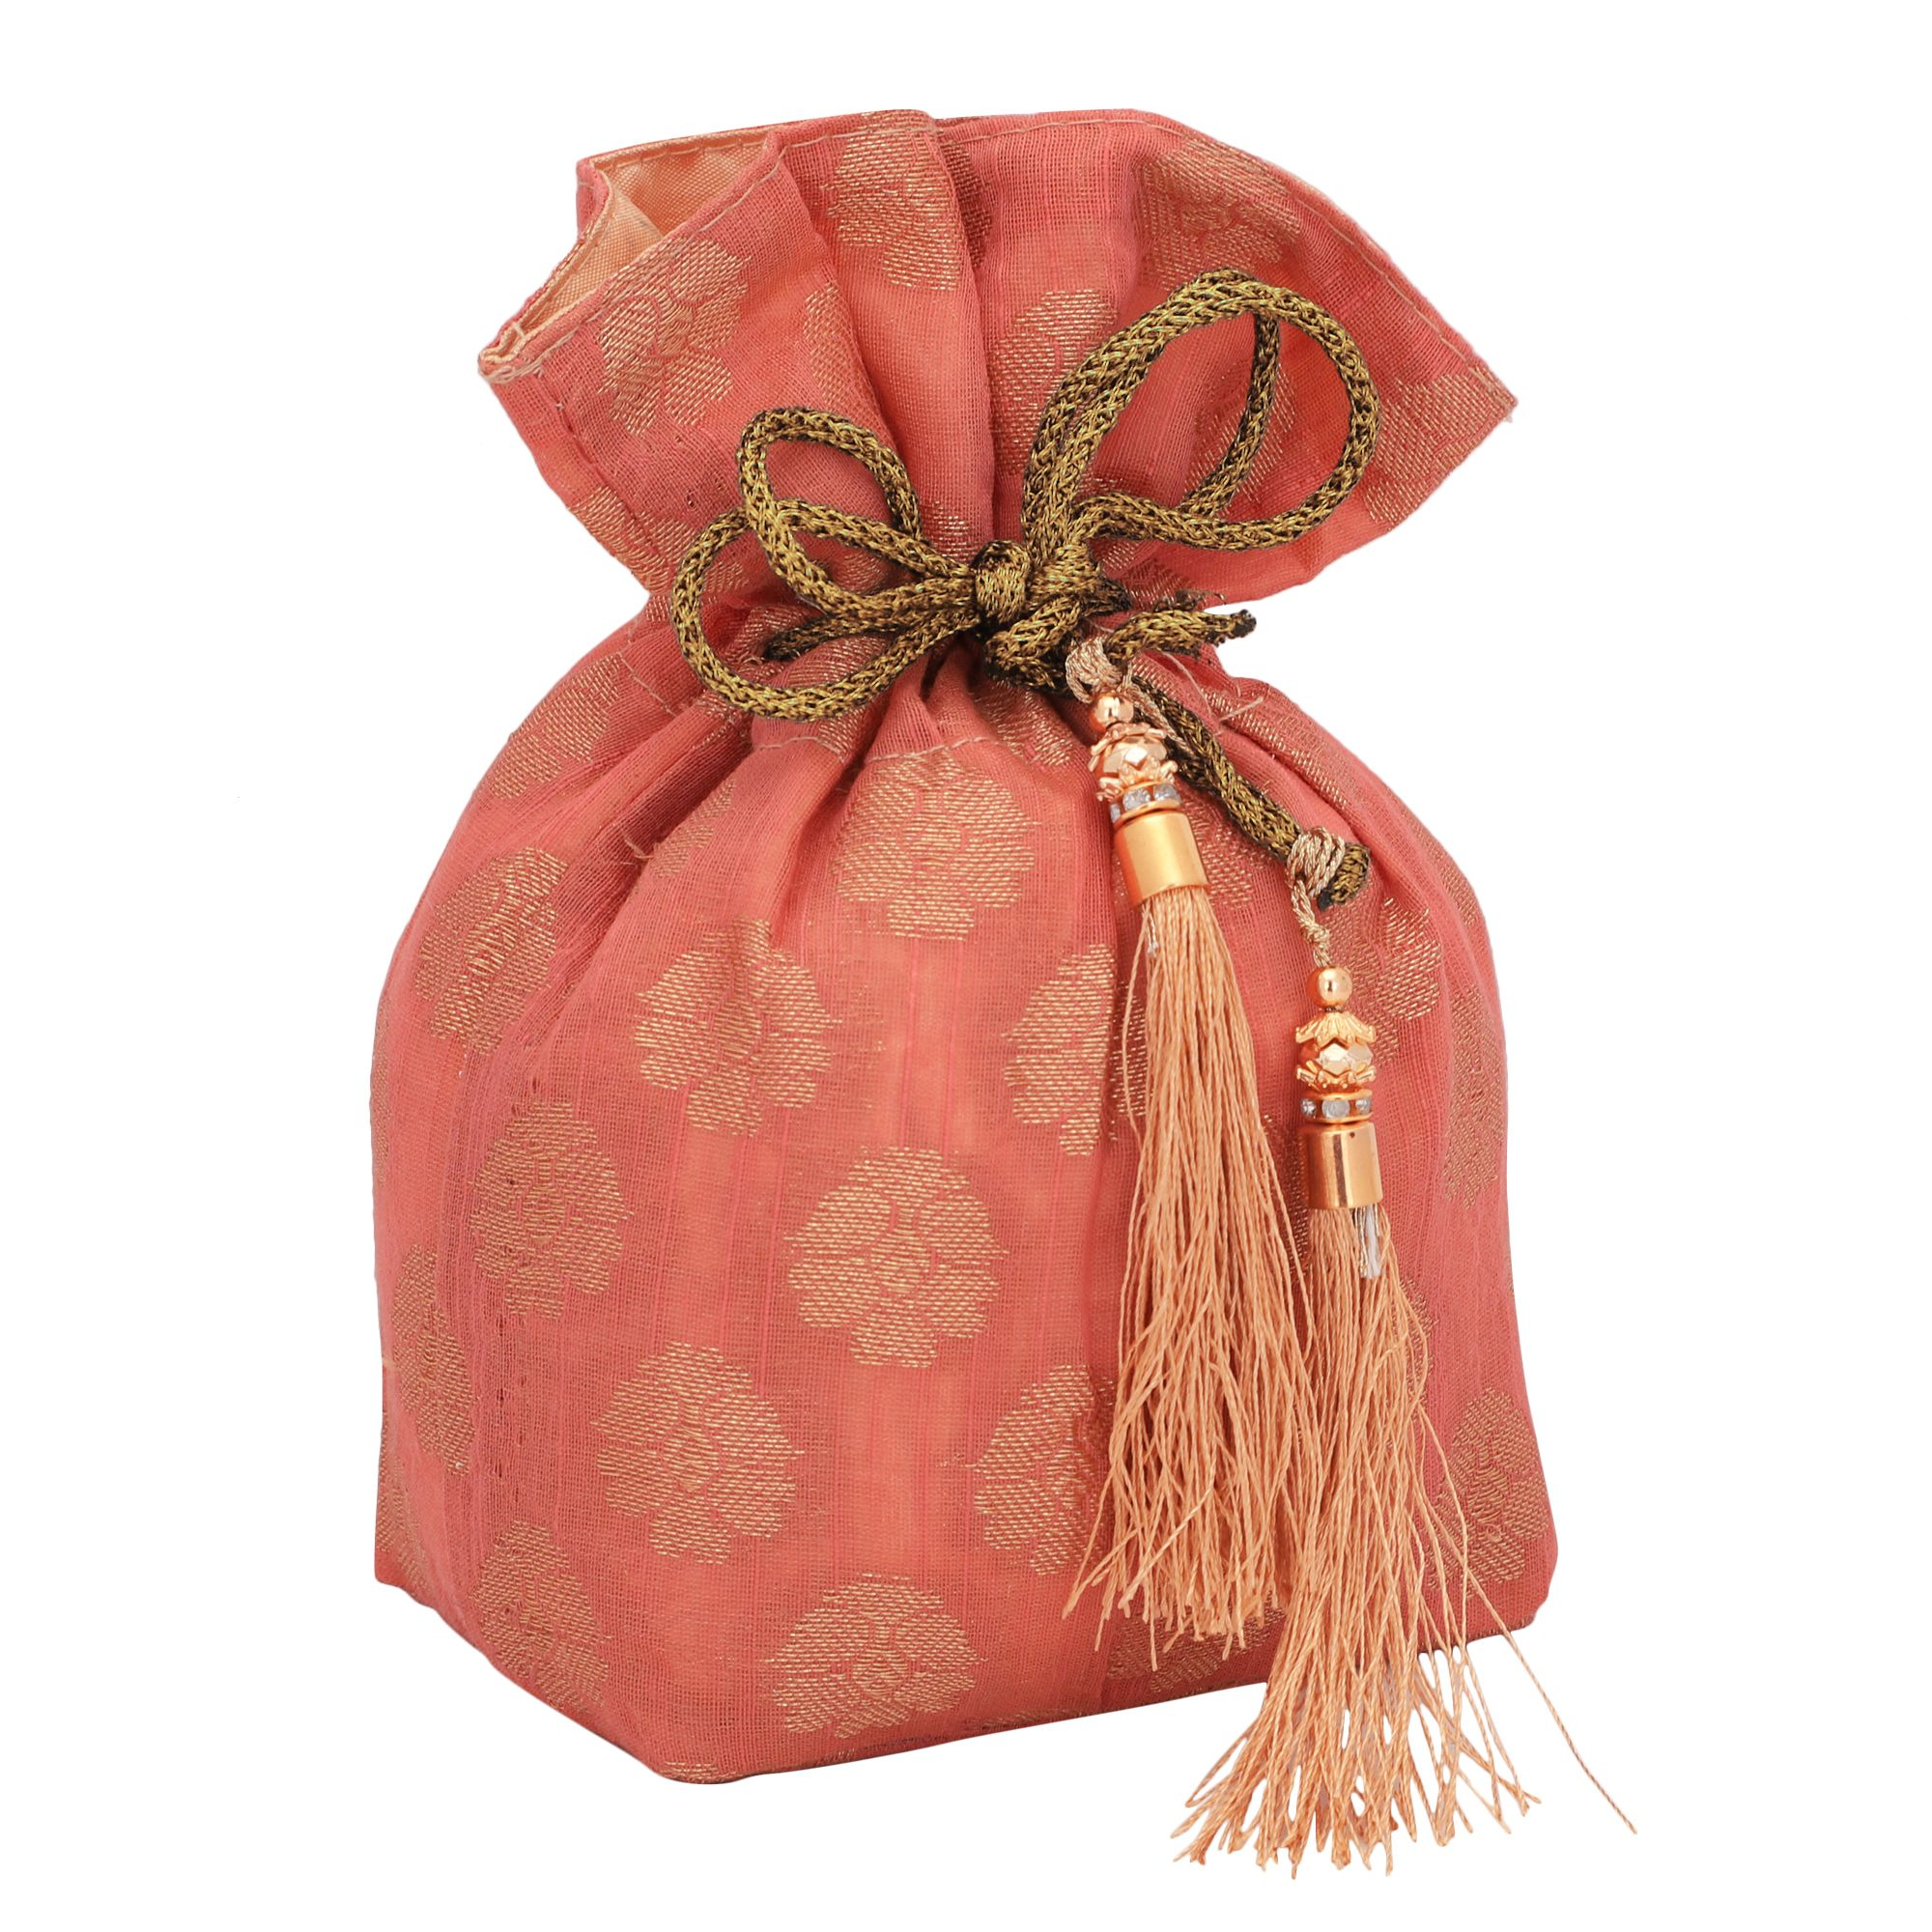 Banarasi Chanderi Jacquard Potli Bag in Peach 1